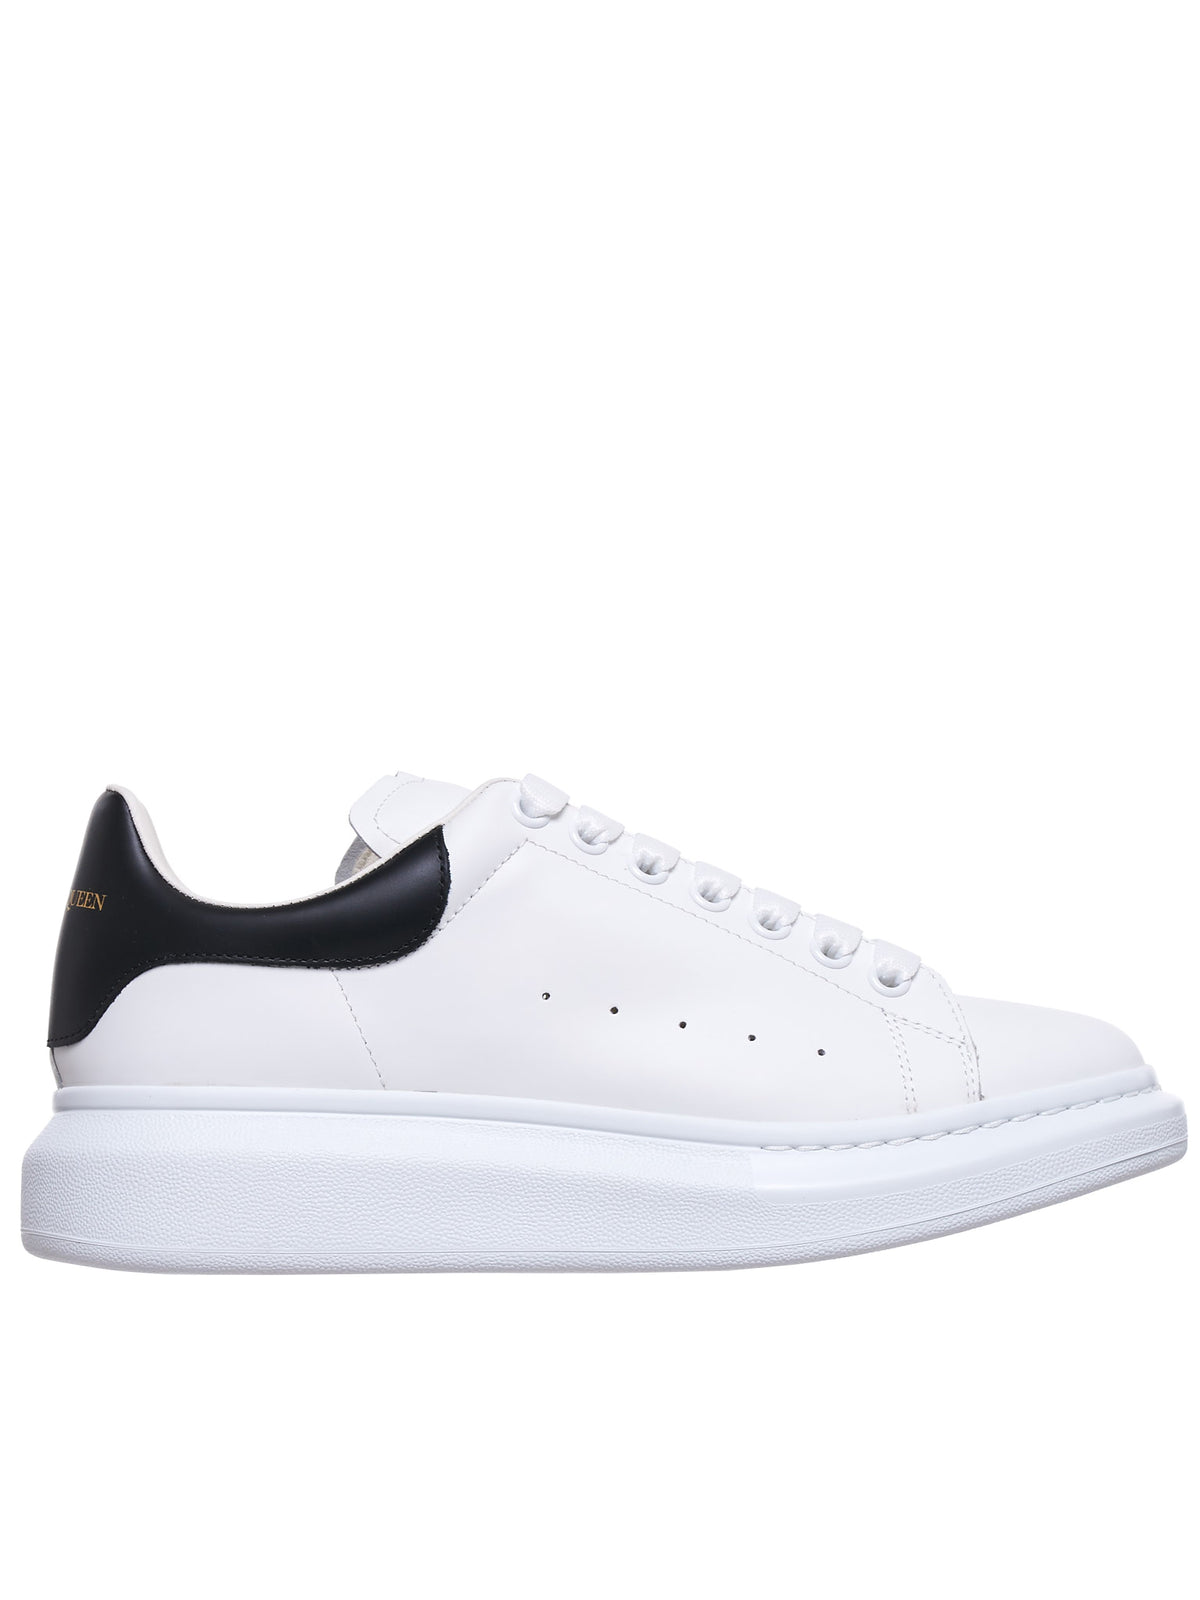 Oversized Sole Sneakers (553680WHGP5-9061-WHITE-BLACK)